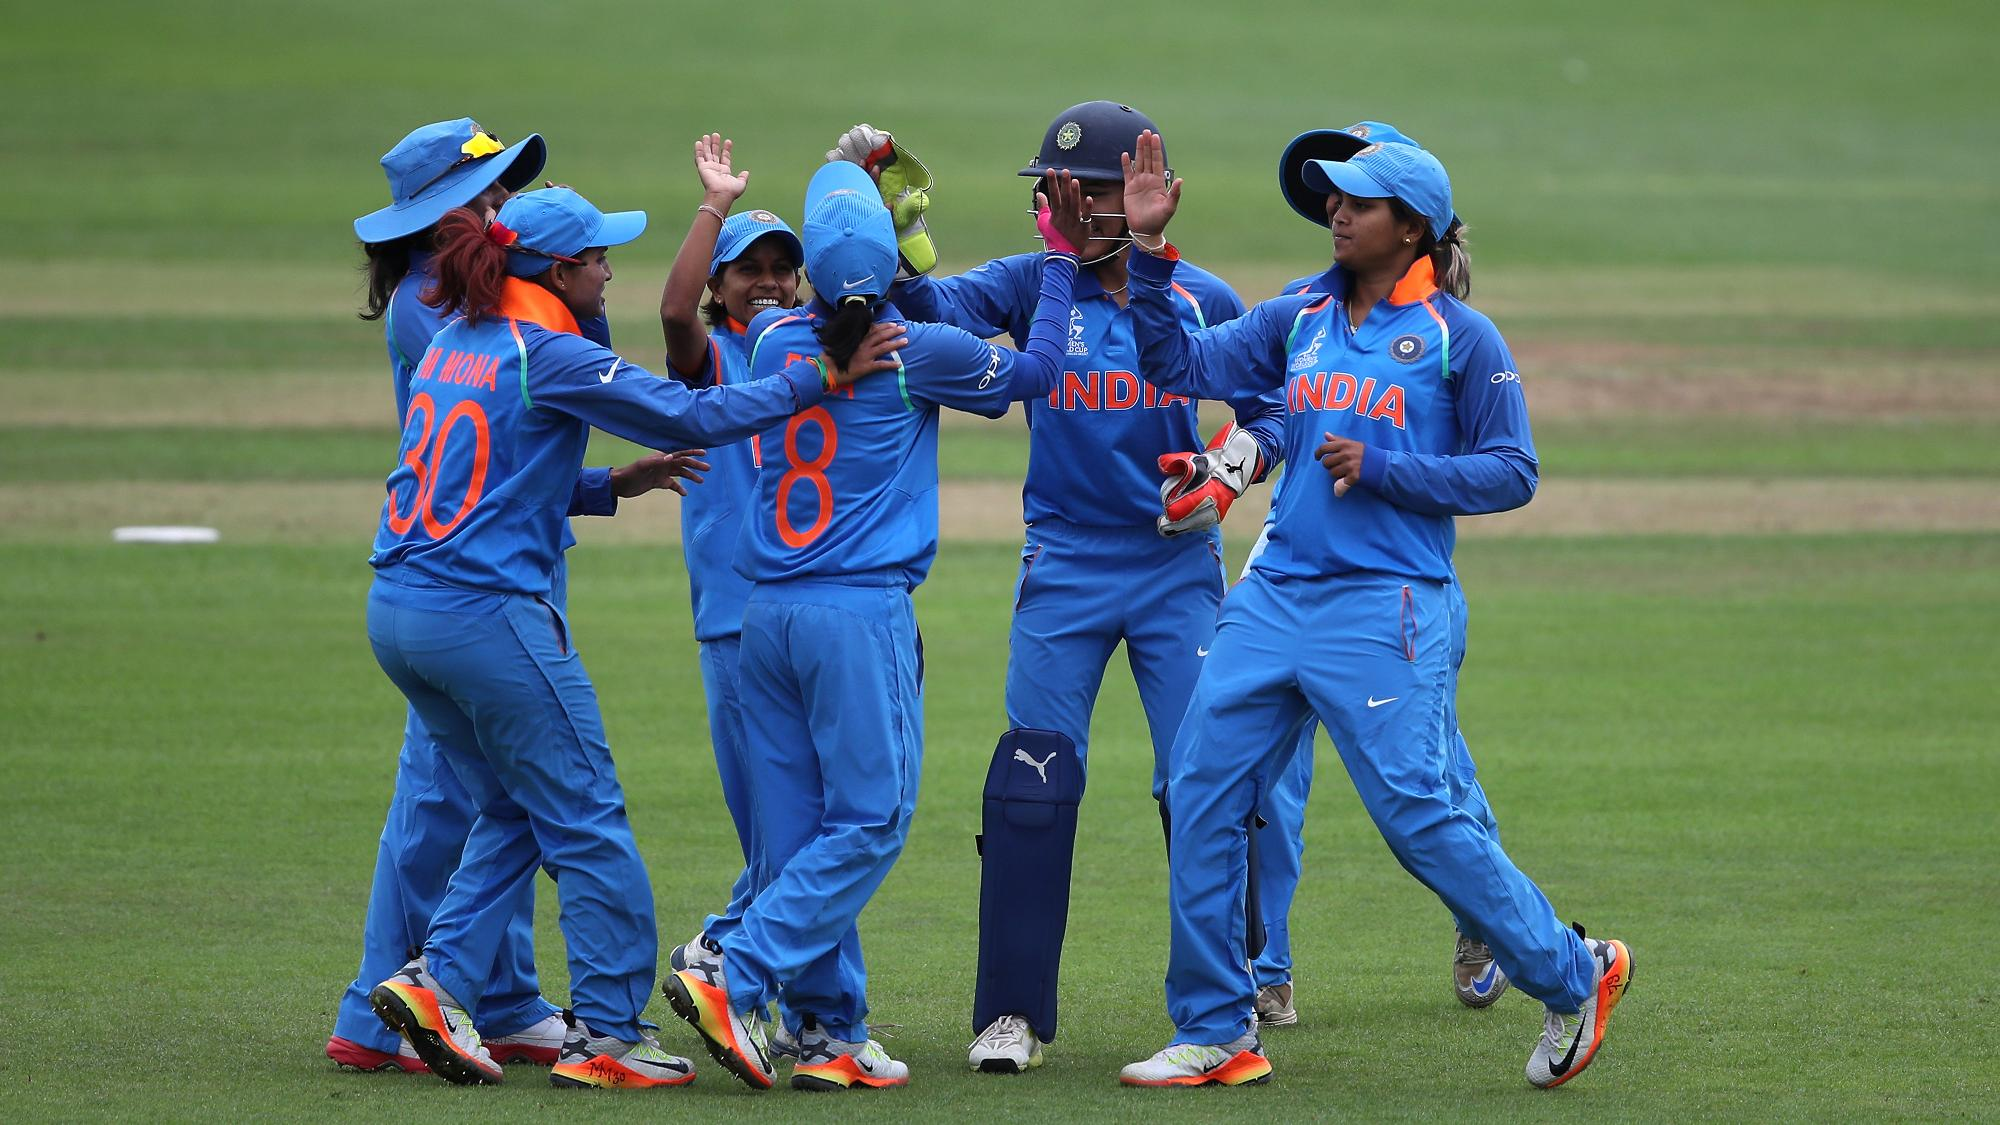 BCCI announces squads for Women's T20 Challenge match